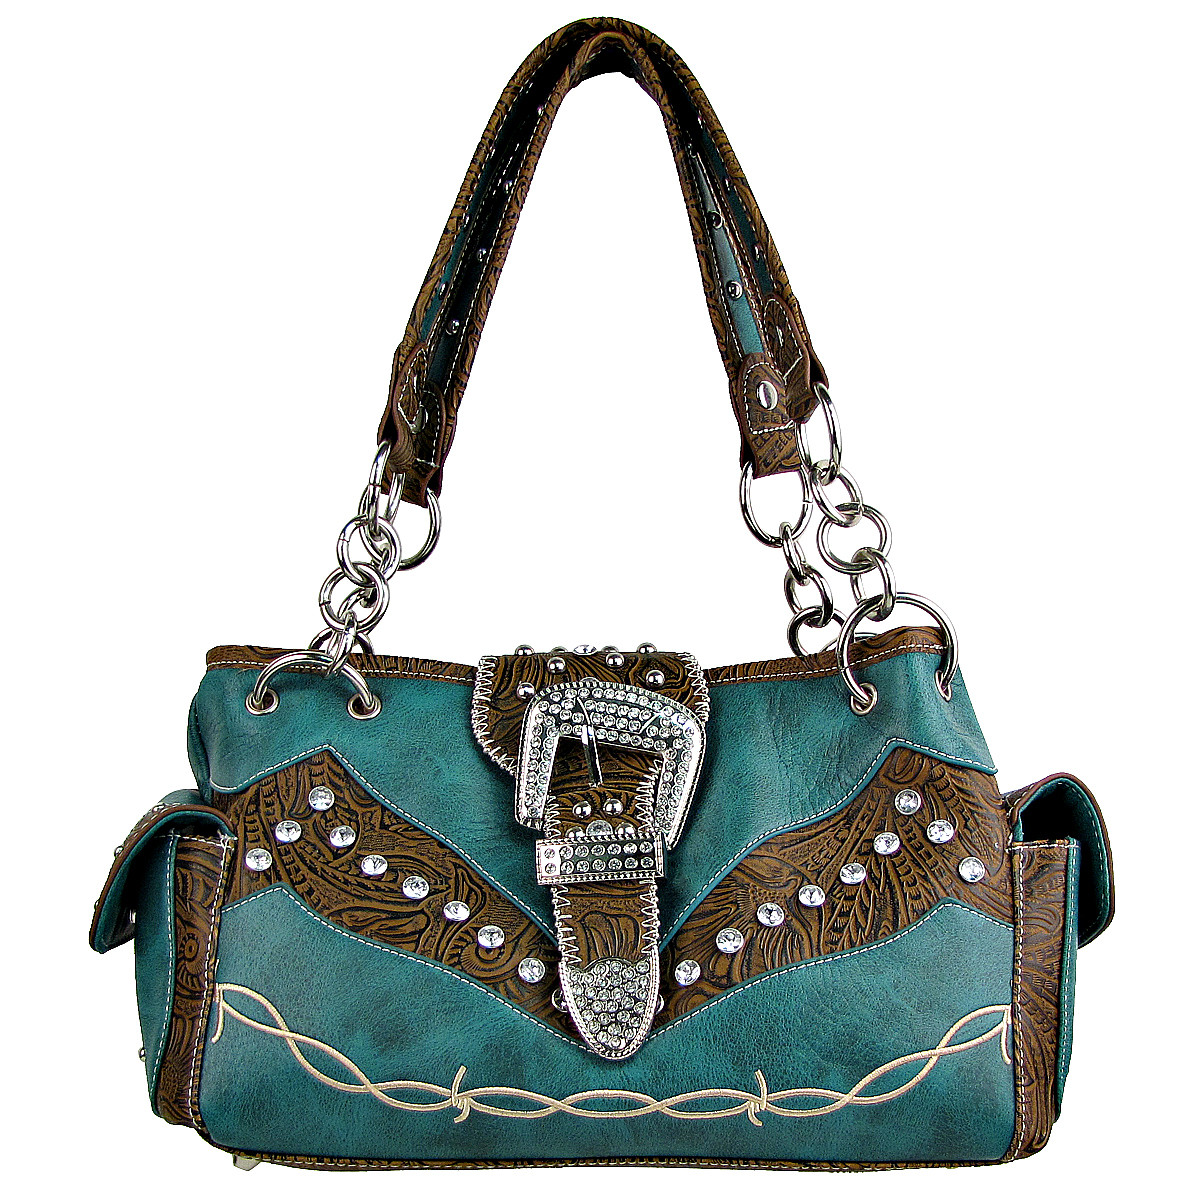 TURQUOISE TOOLED RHINESTONE BUCKLE LOOK WESTERN SHOULDER HANDBAG HB1-C1009TRQ